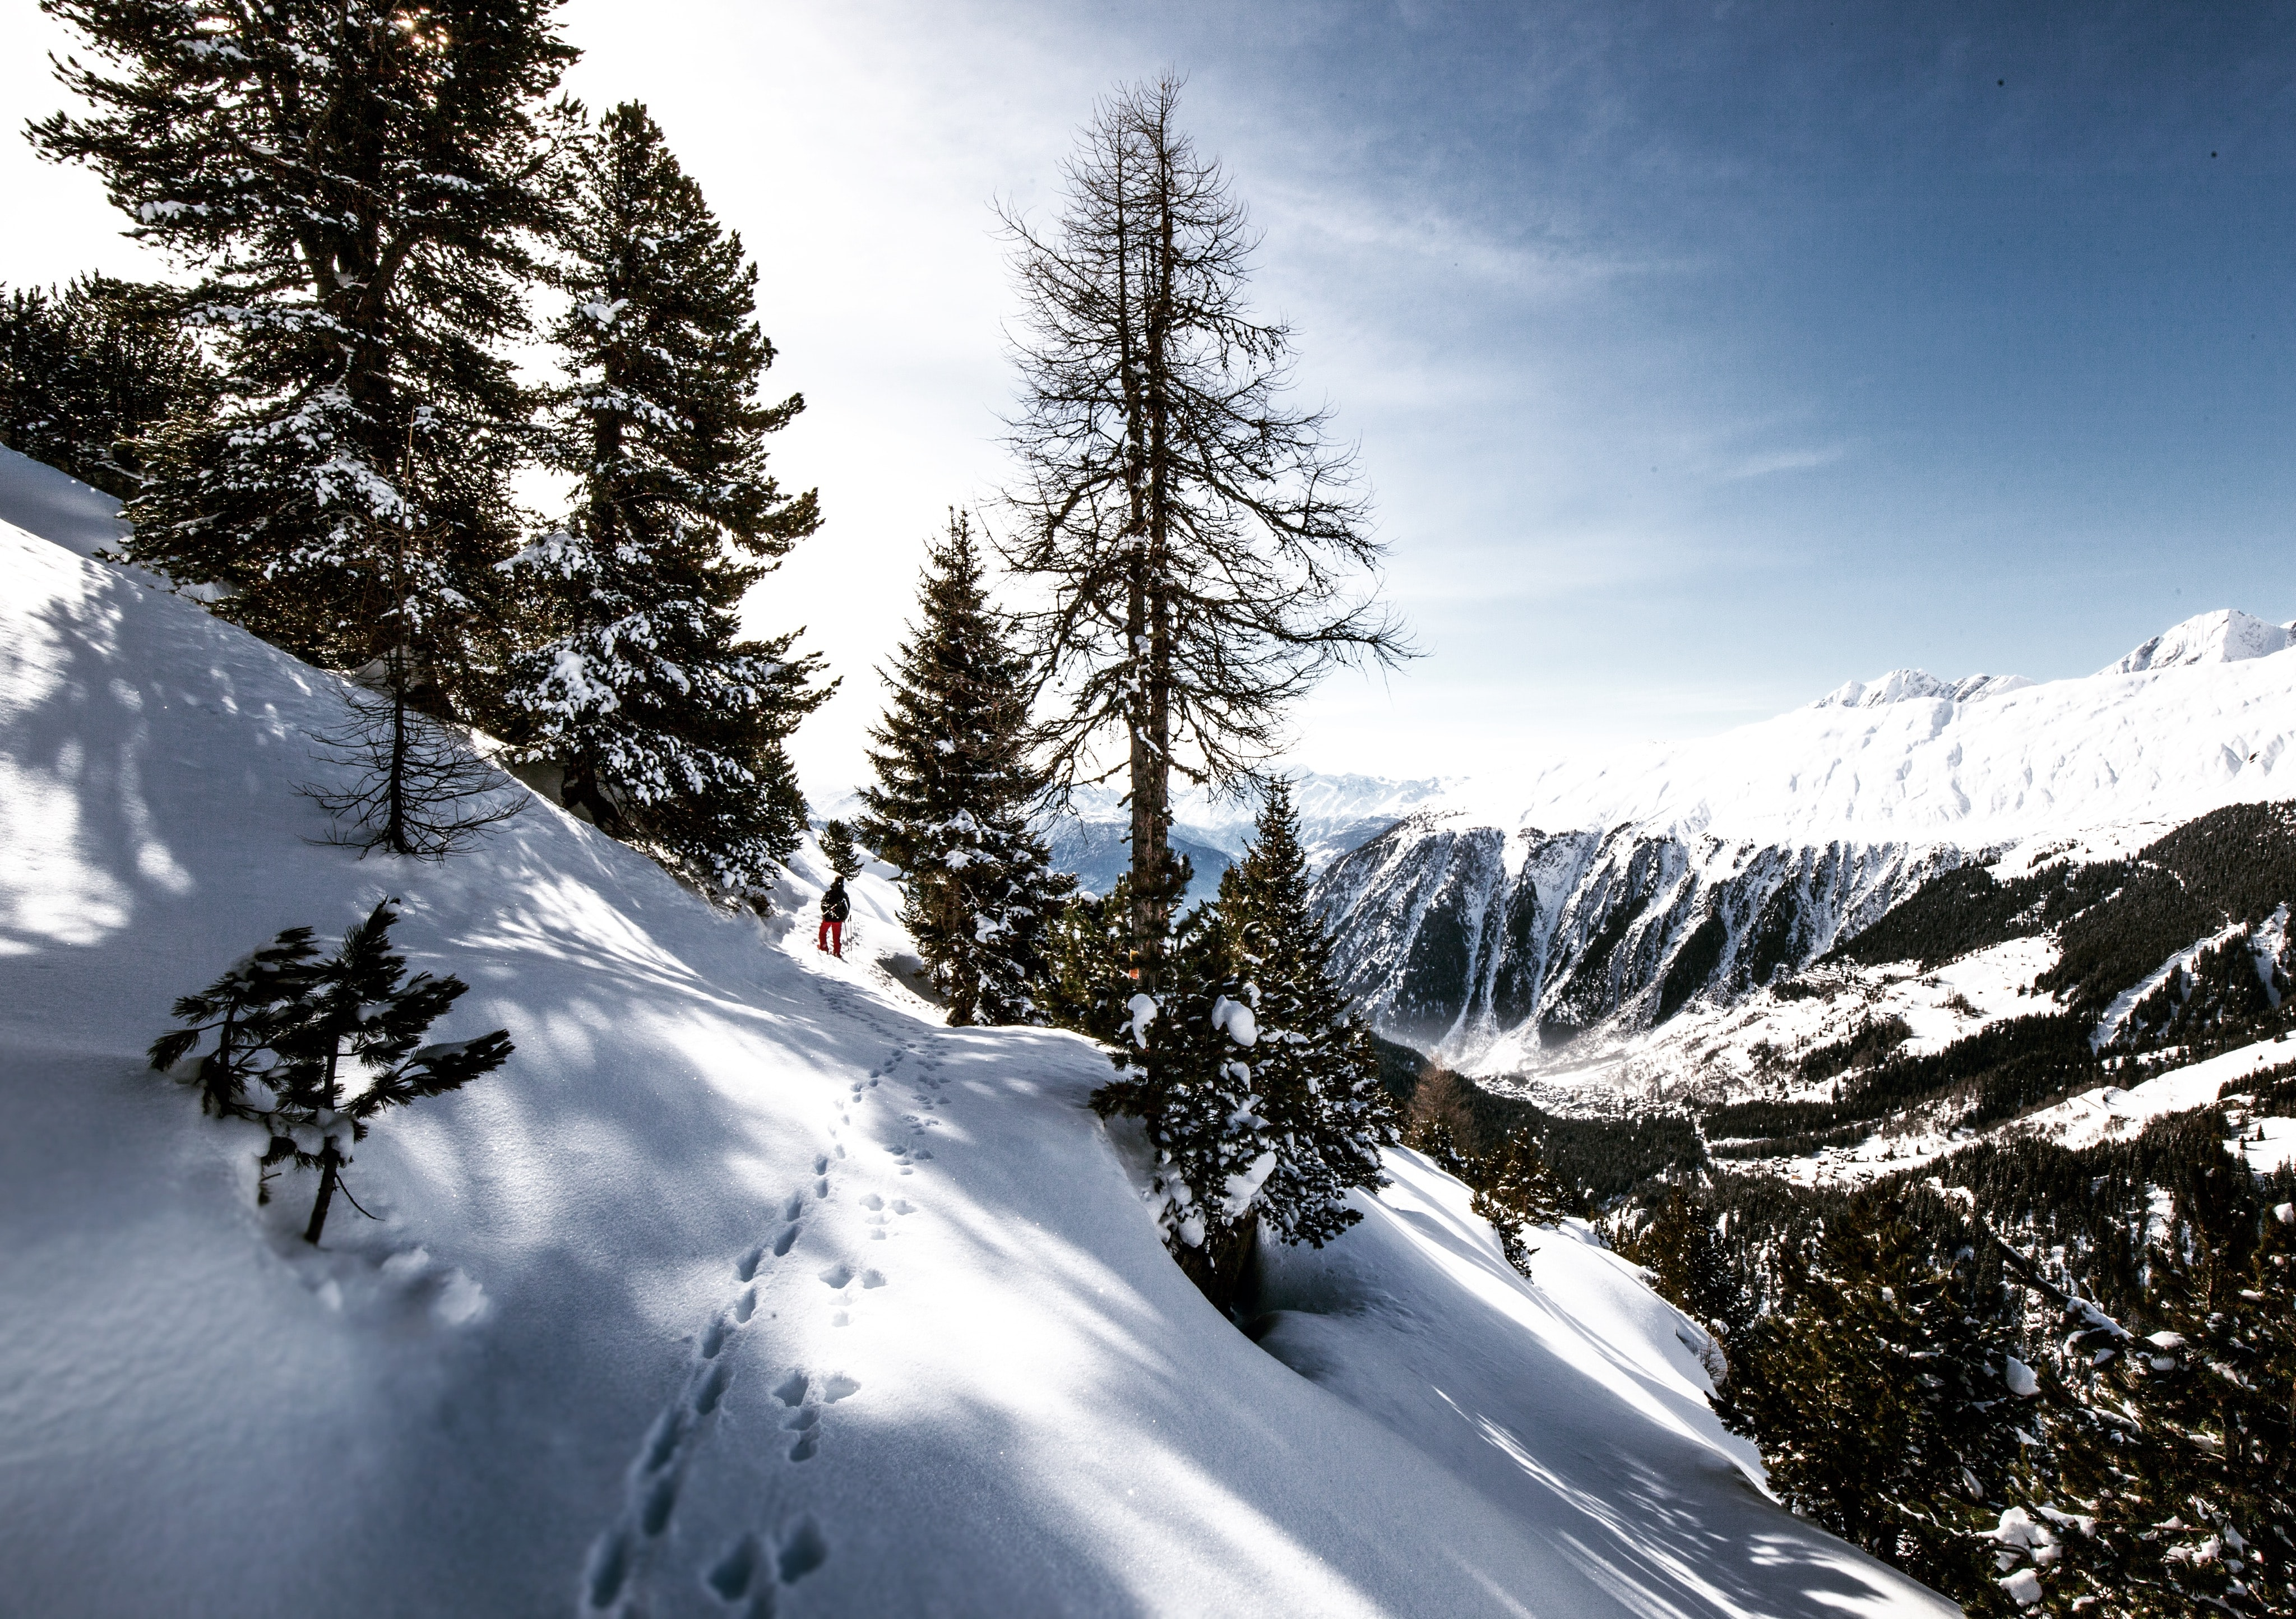 Downward slope of snow with several trees and mountains